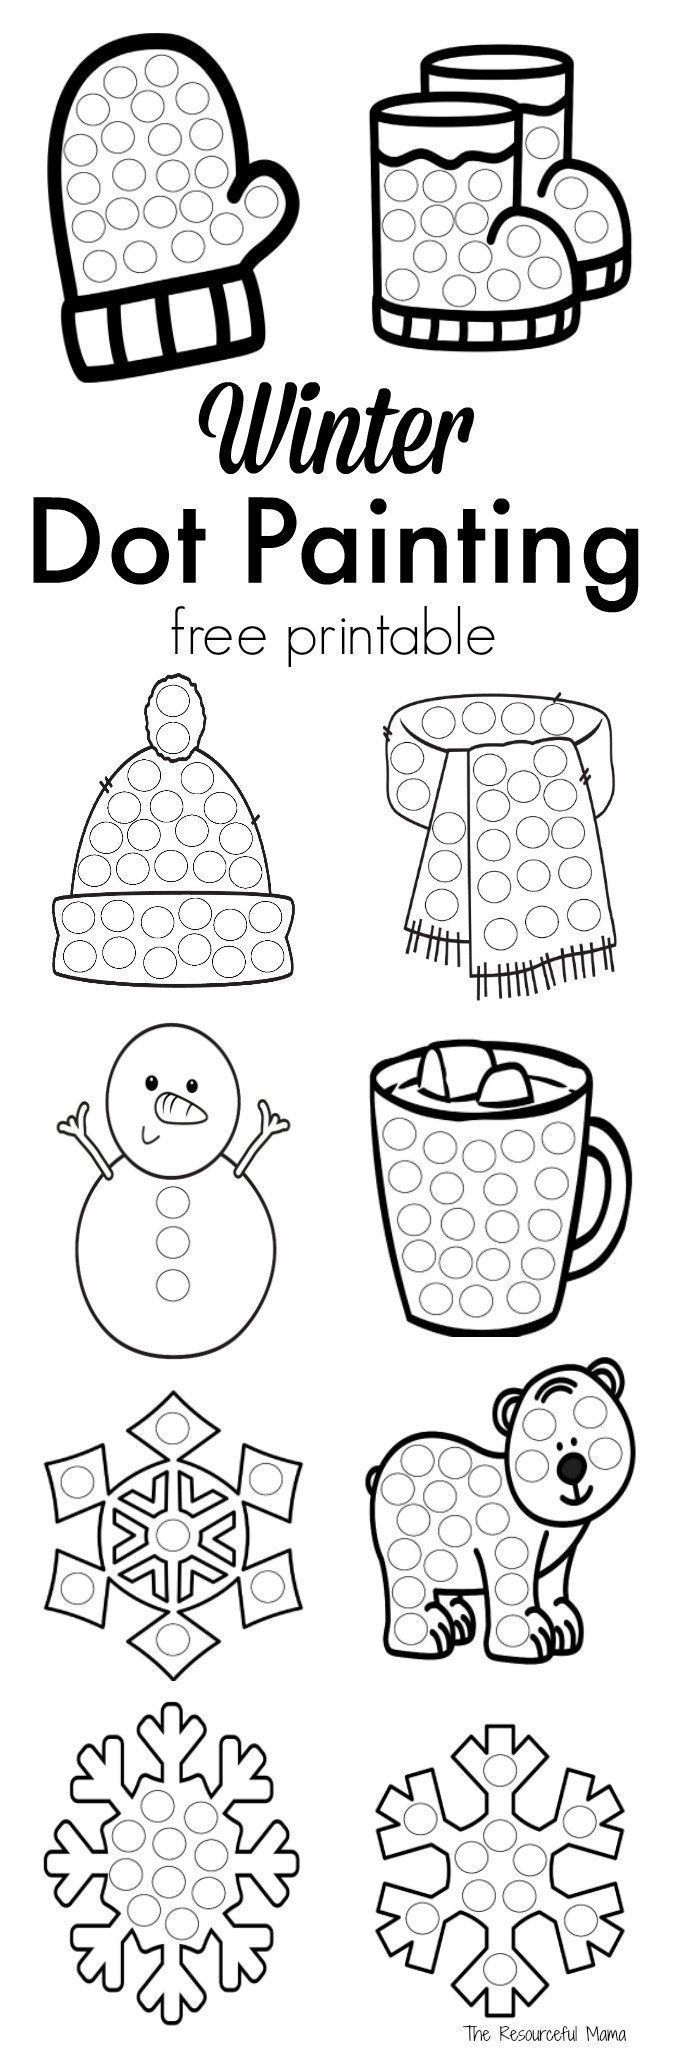 Winter Dot Painting Free Printable